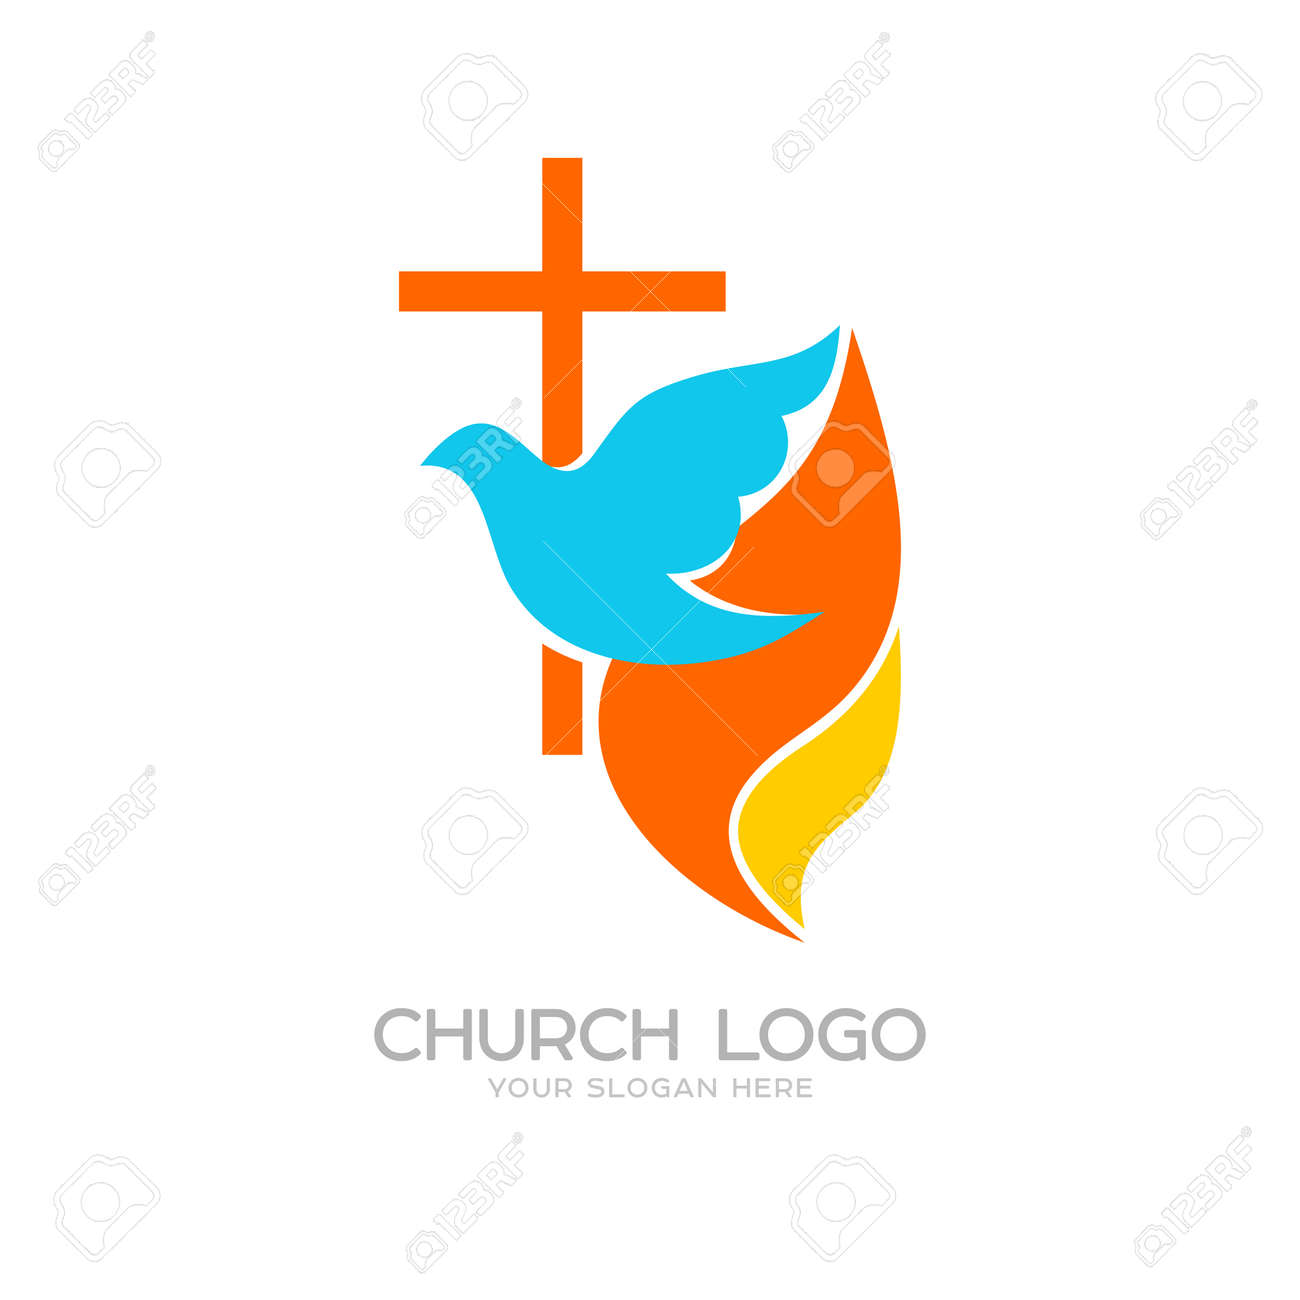 Church logo cristian symbols the cross of jesus the dove and church logo cristian symbols the cross of jesus the dove and the flame altavistaventures Images